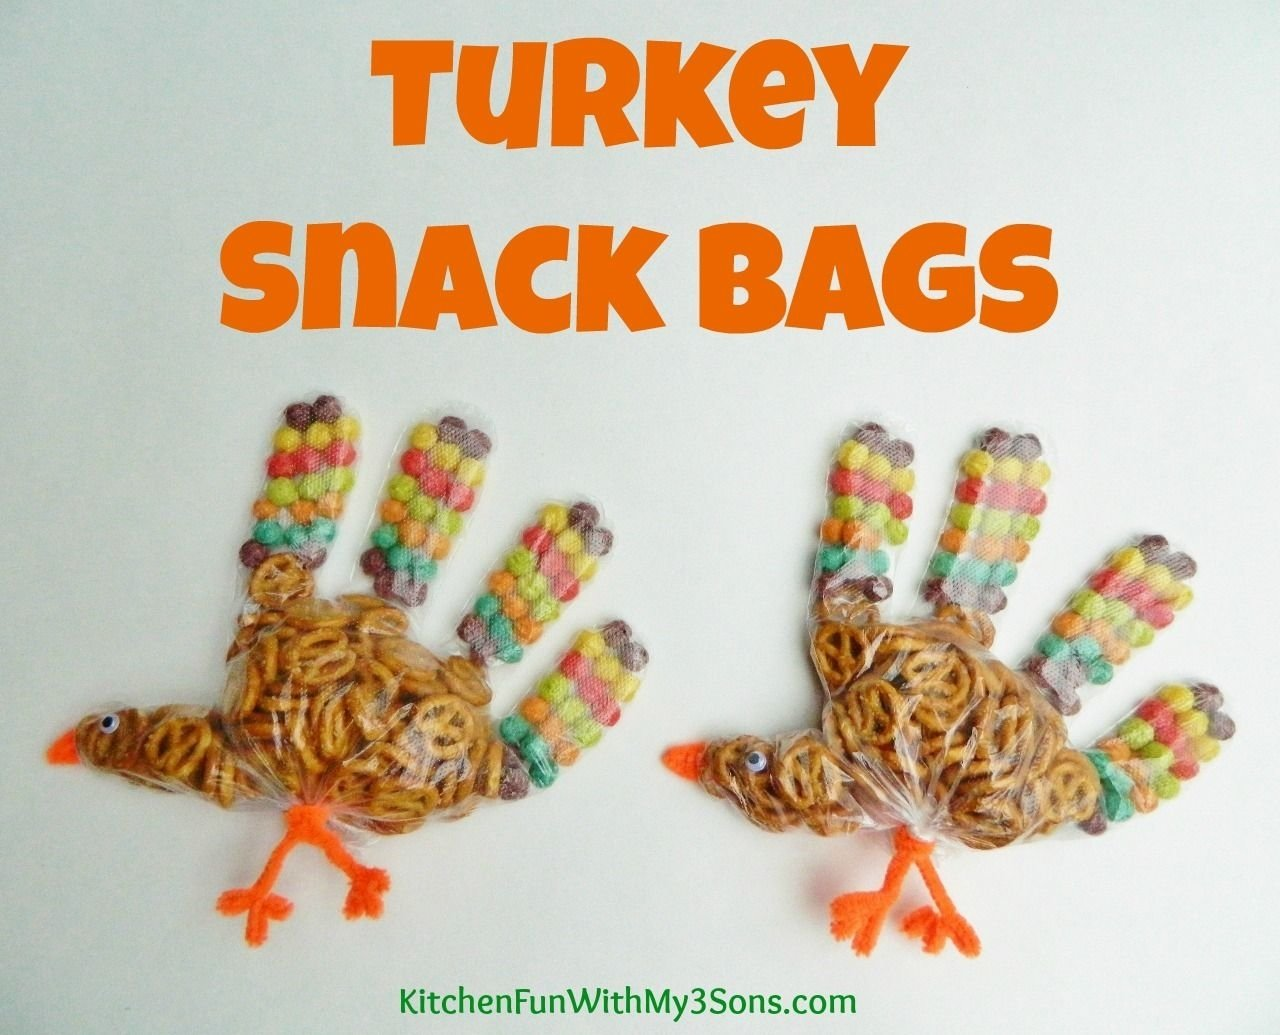 10 Ideal Thanksgiving Snack Ideas For Kids turkey snack bagsperfect for thanksgiving class parties at school